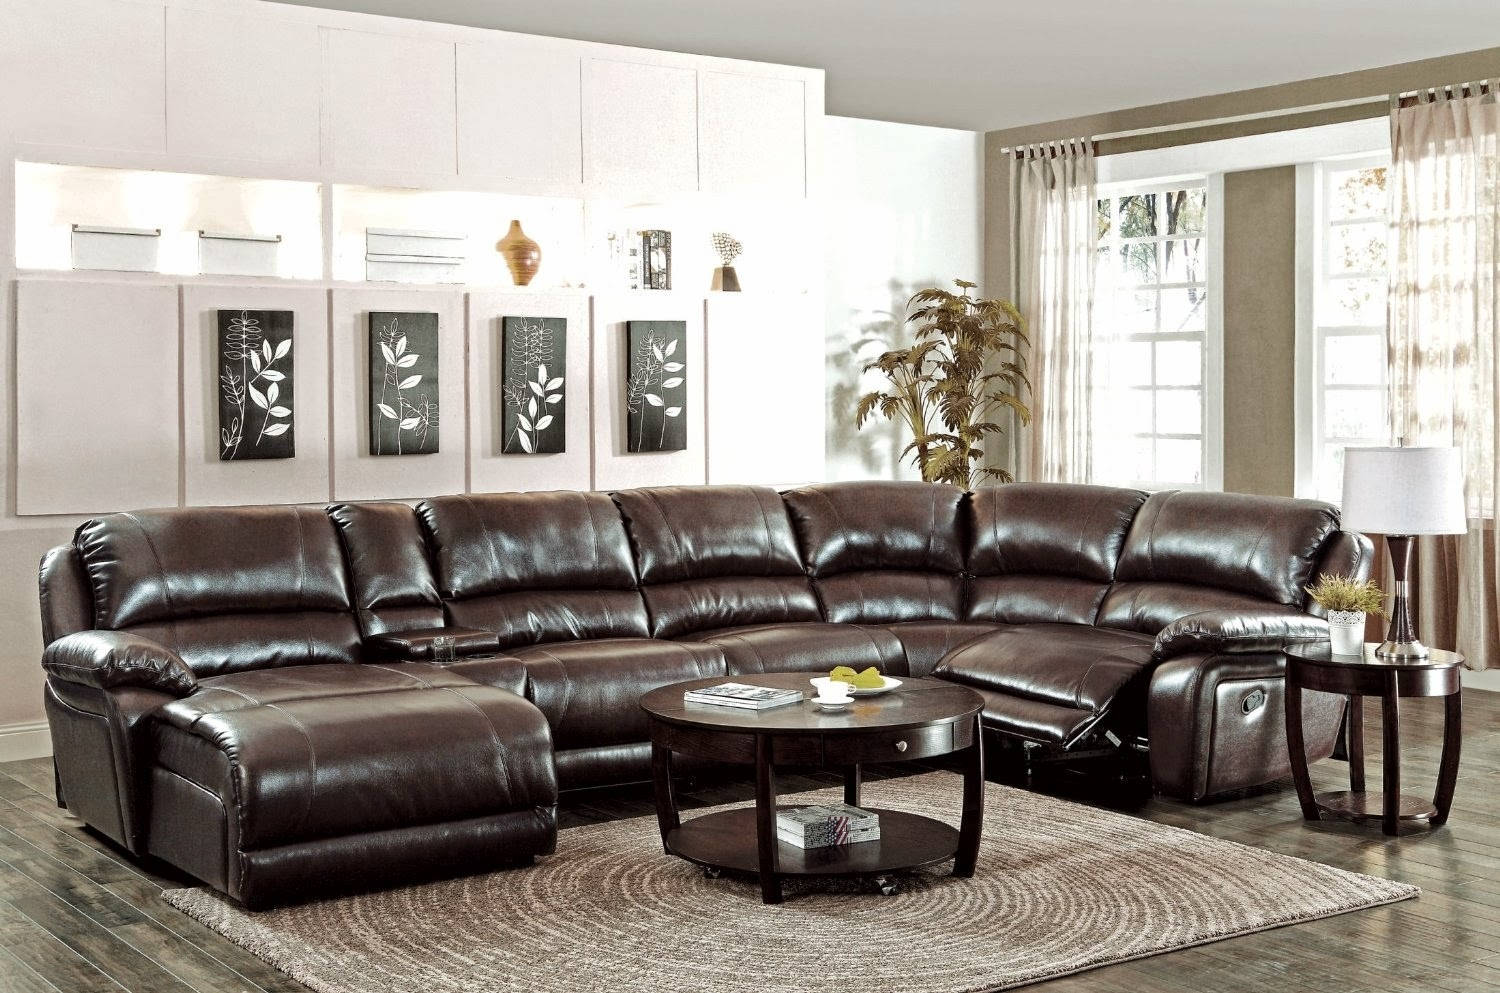 Modern Reclining Couches Reclining Leather Couches Pertaining To 6 Piece Leather Sectional Sofa (View 3 of 15)